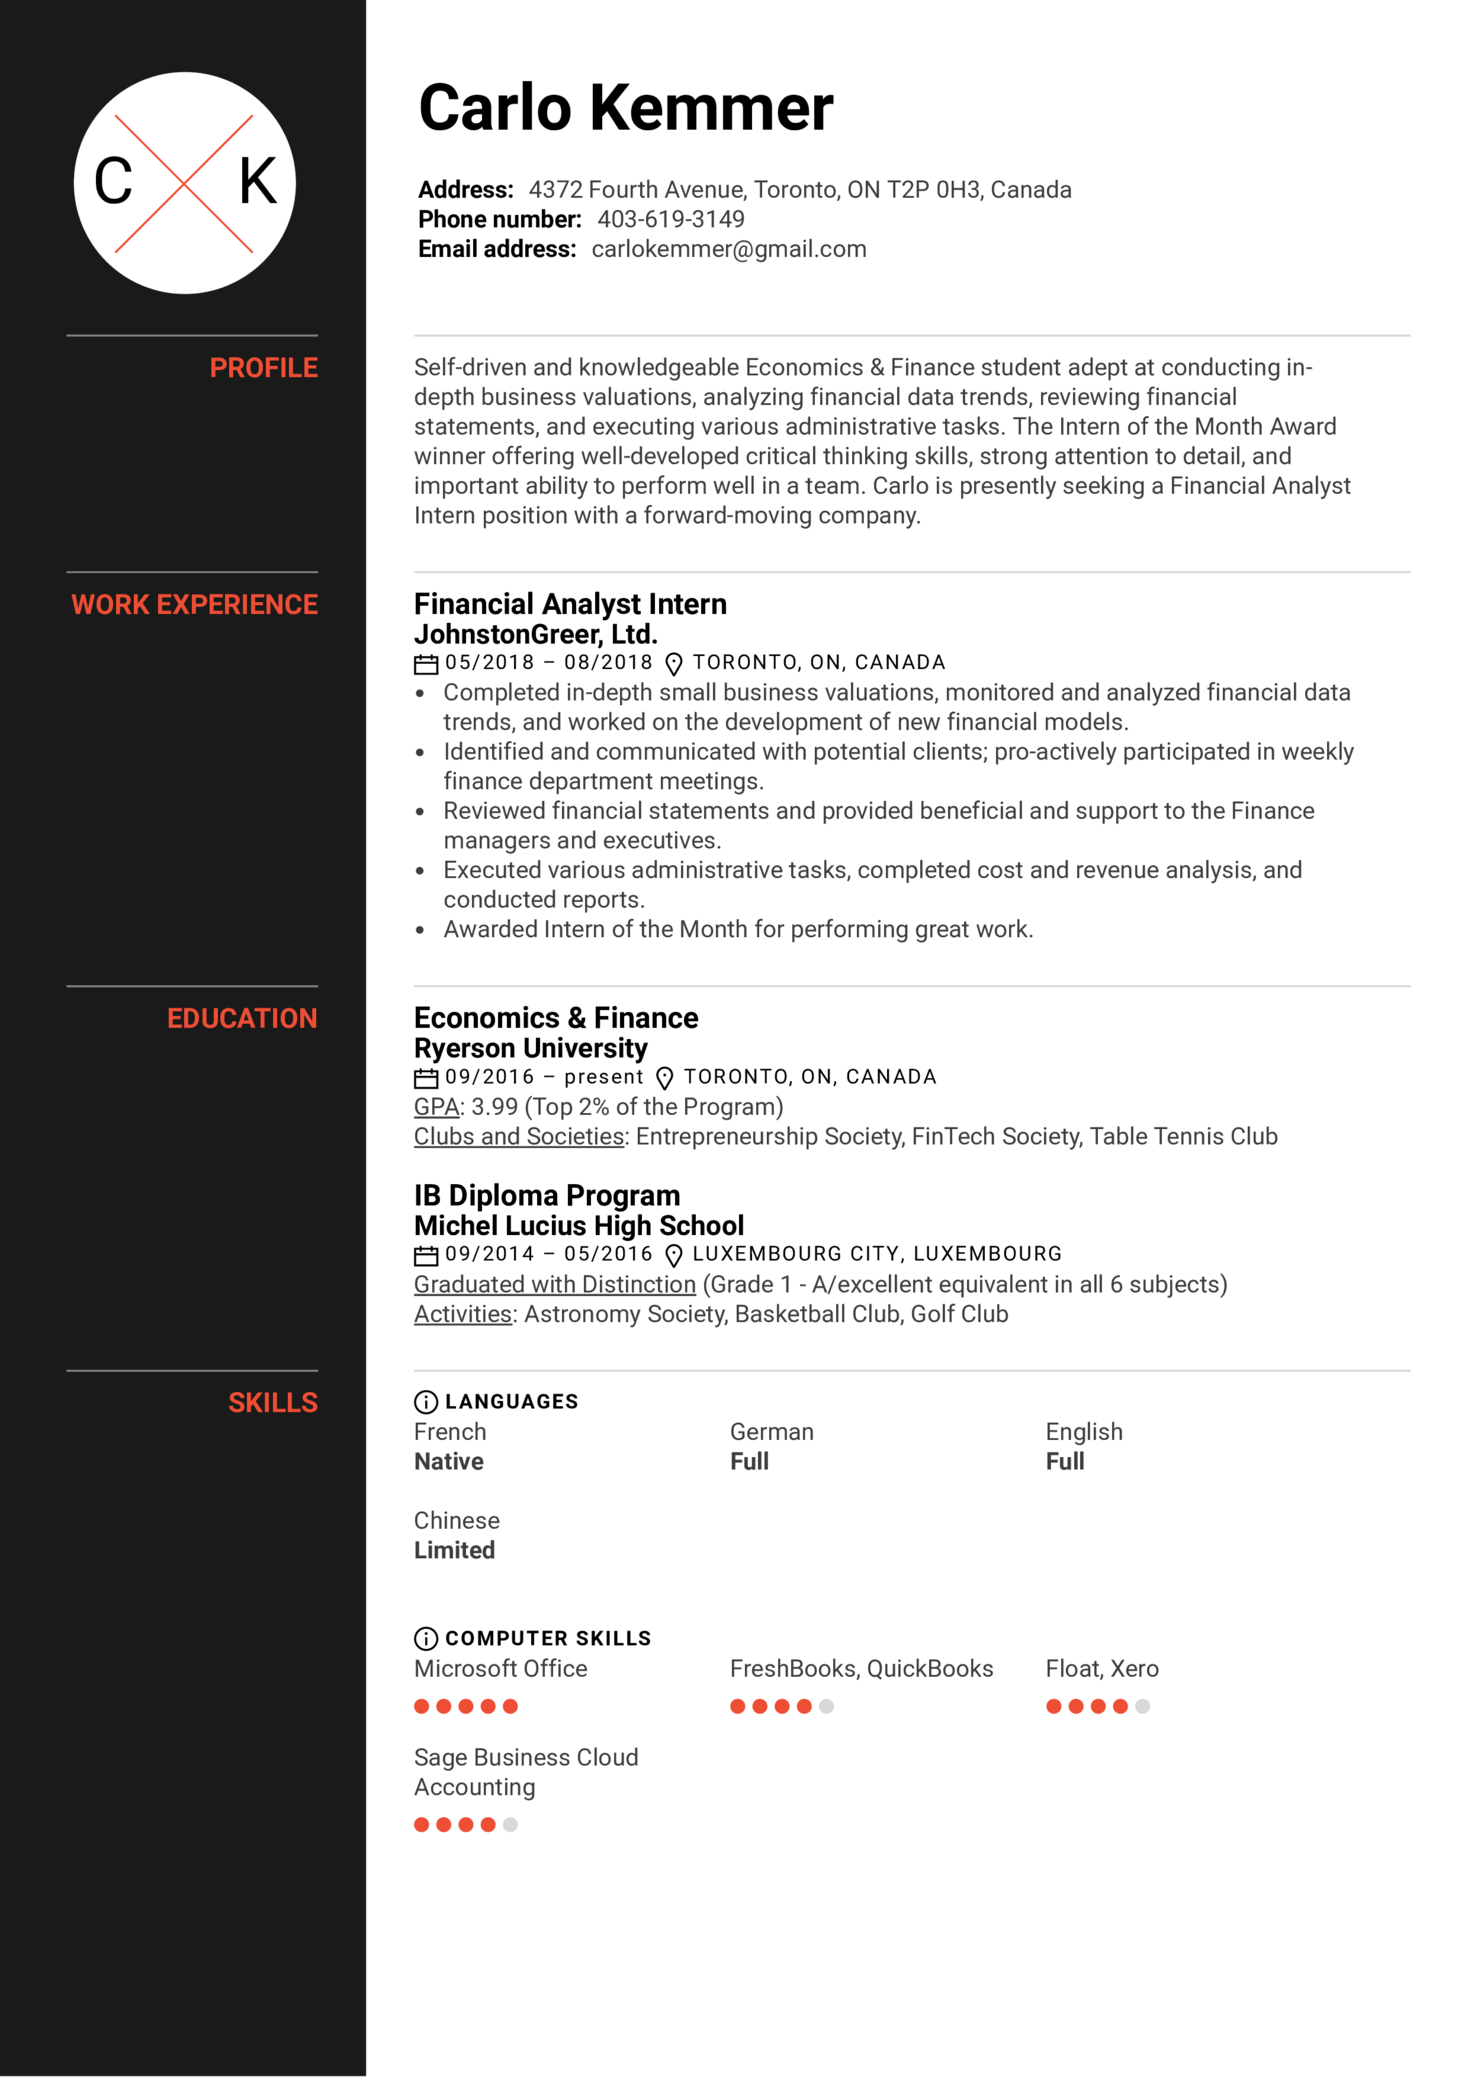 Resume Examples By Real People Financial Analyst Intern